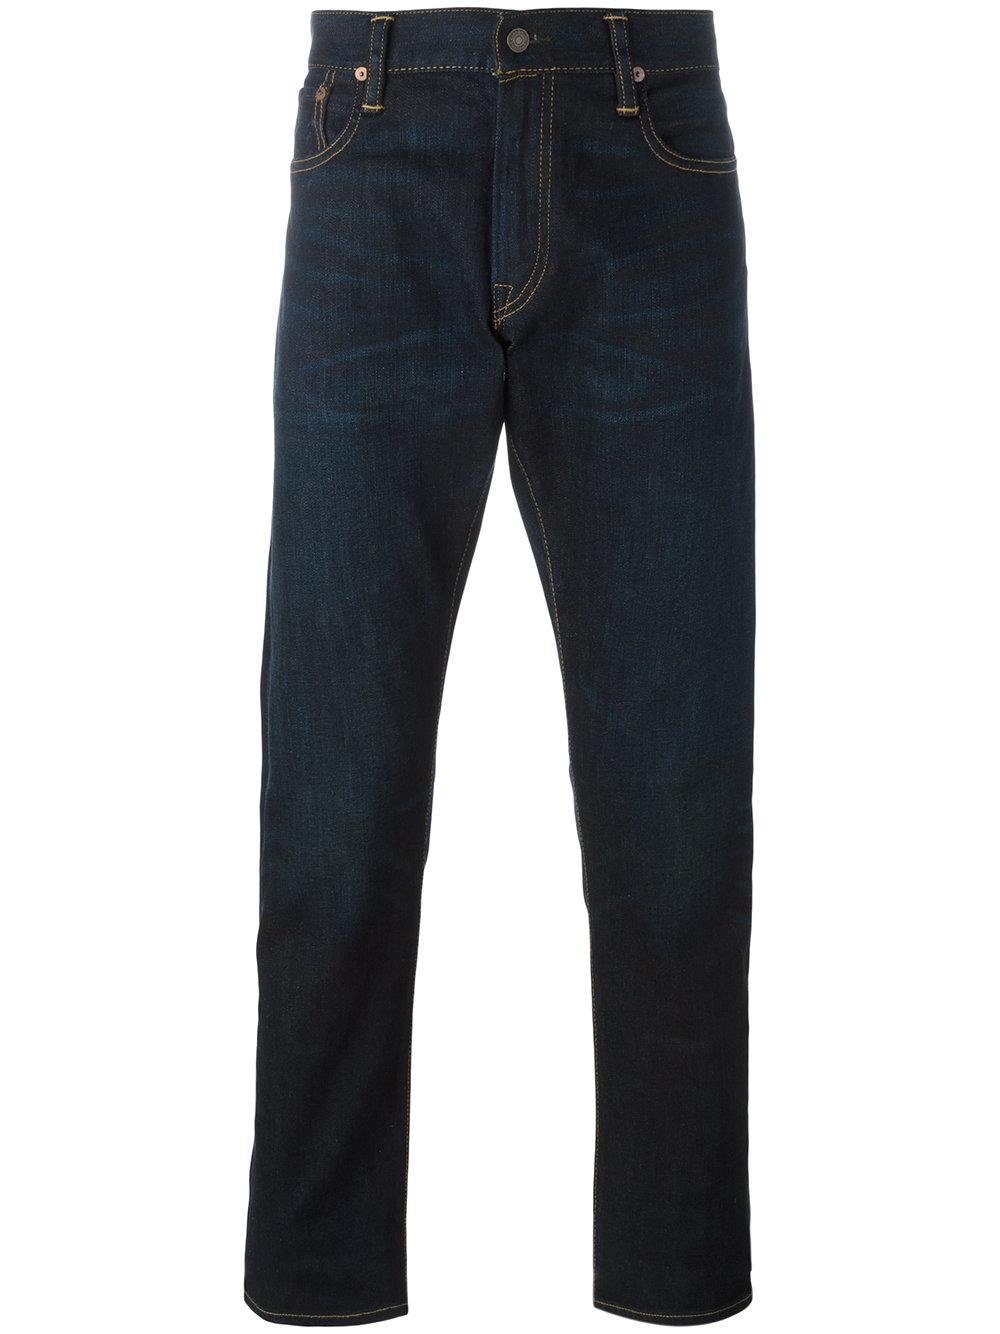 polo ralph lauren straight leg jeans in blue for men lyst. Black Bedroom Furniture Sets. Home Design Ideas